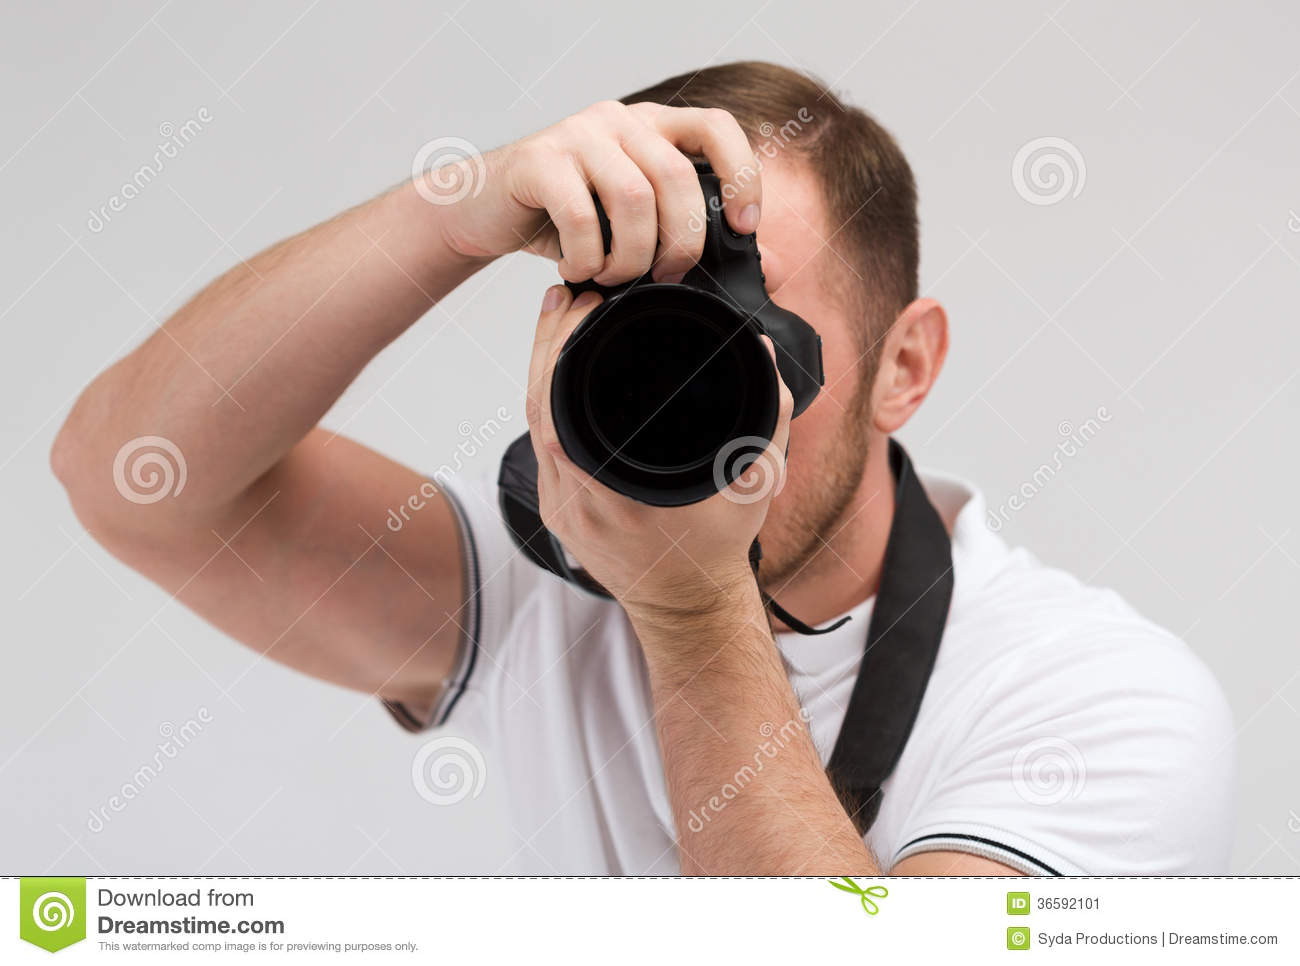 ... people concept - male photographer taking picture with digital camera